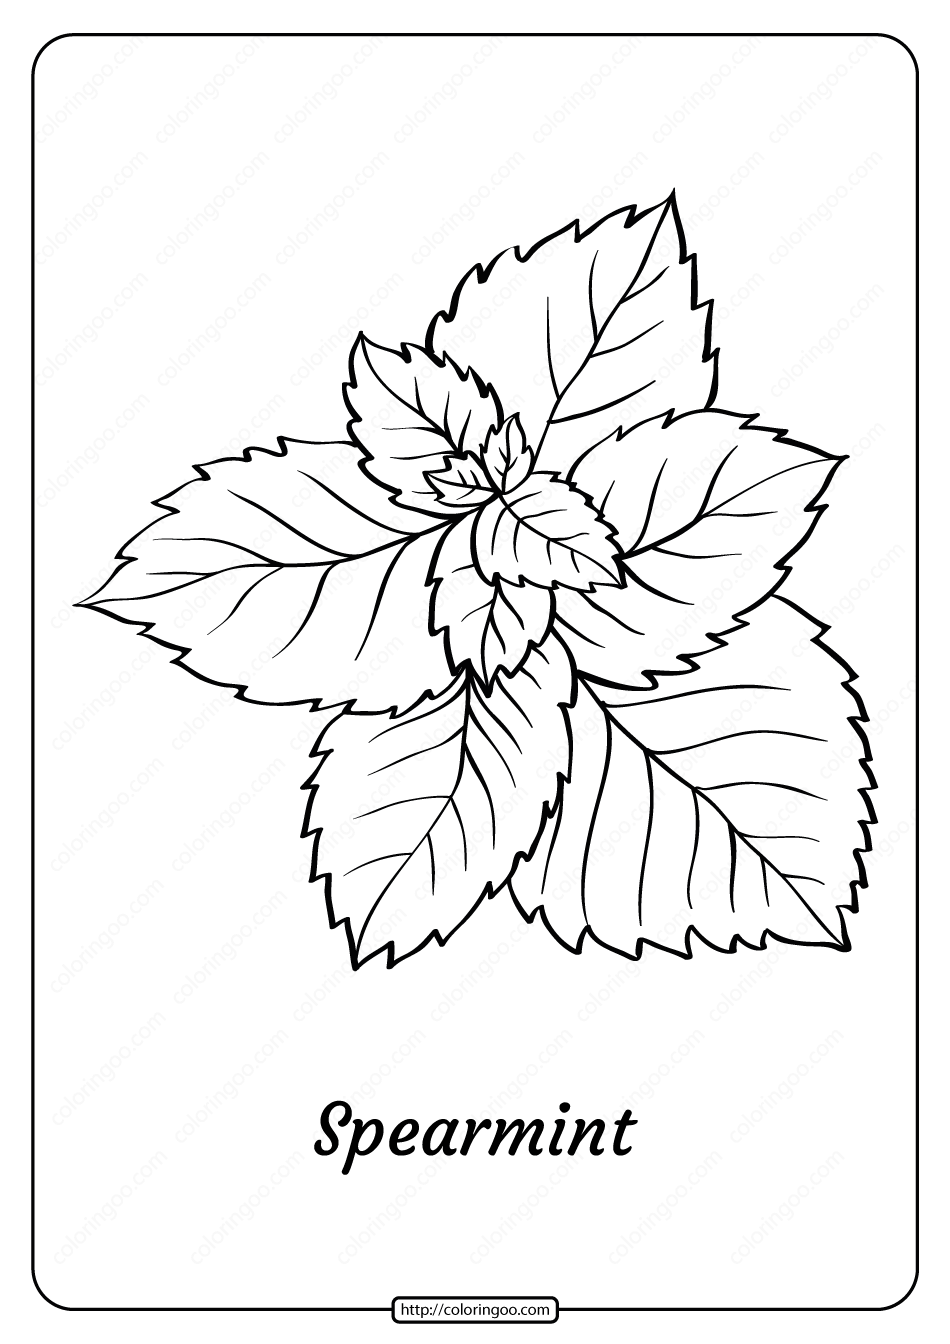 Free Printable Spearmint Outline Coloring Page